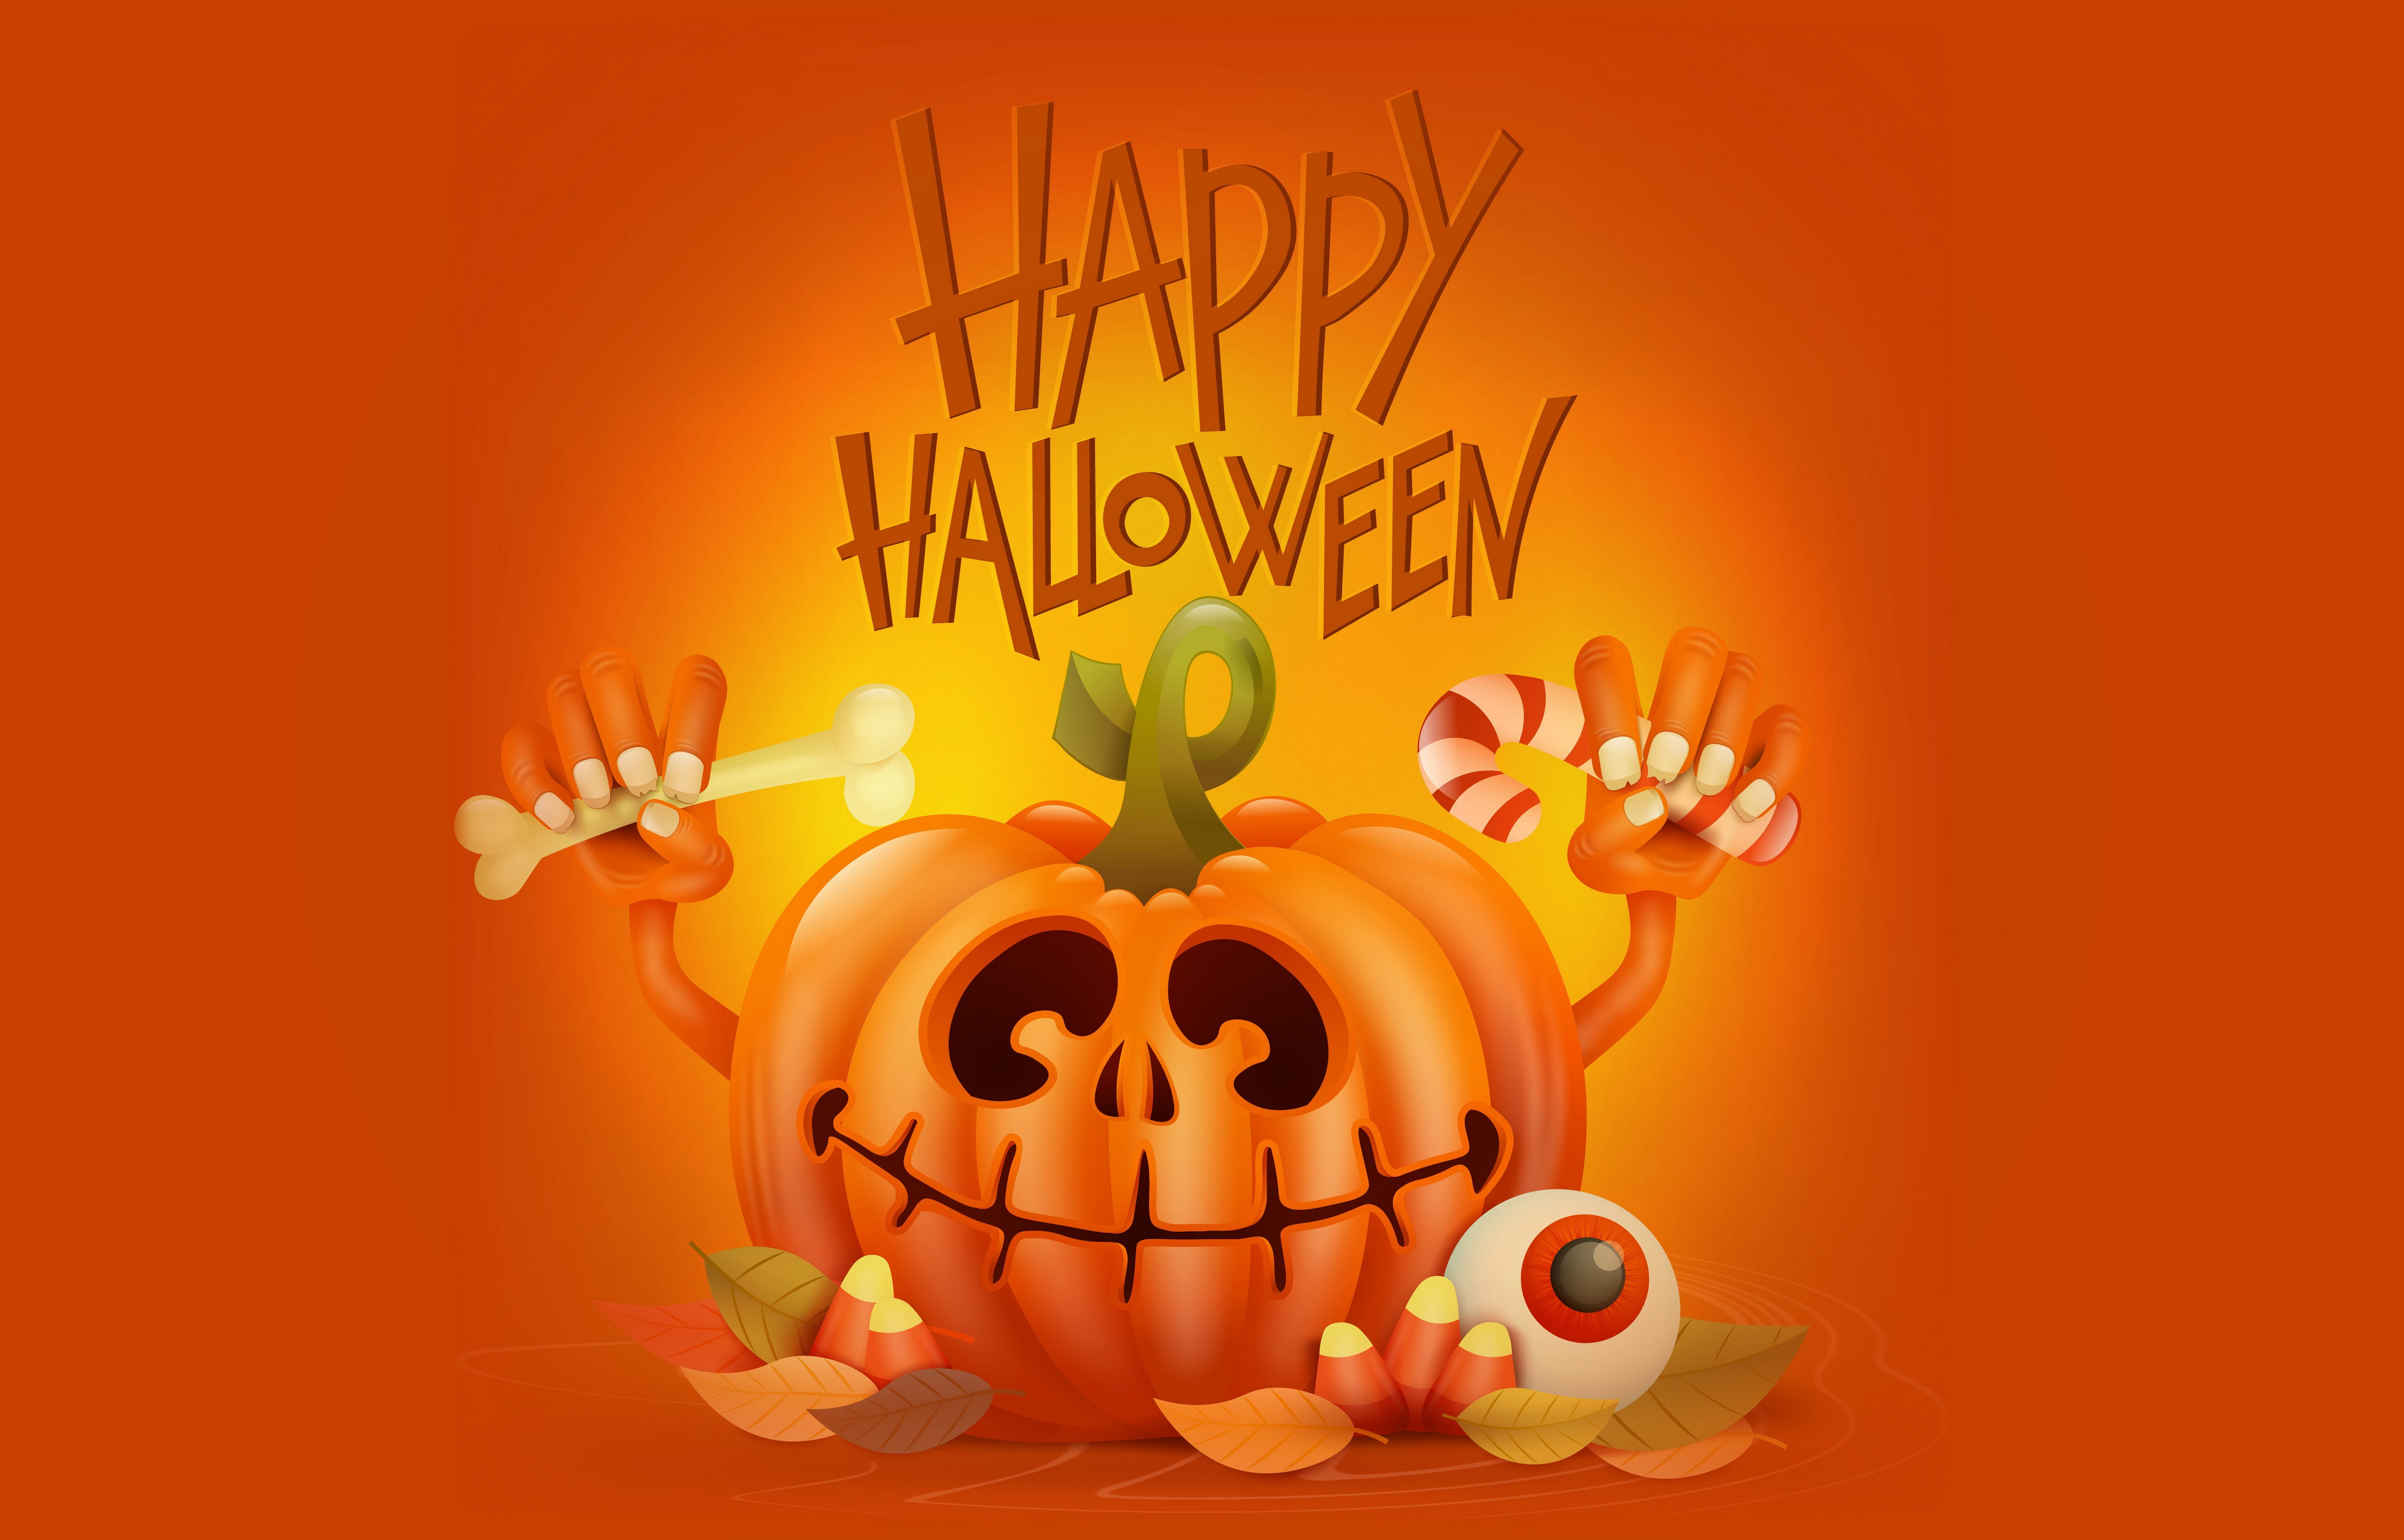 Happy halloween 4k hd celebrations 4k wallpapers images backgrounds photos and pictures - Funny happy halloween wallpaper ...